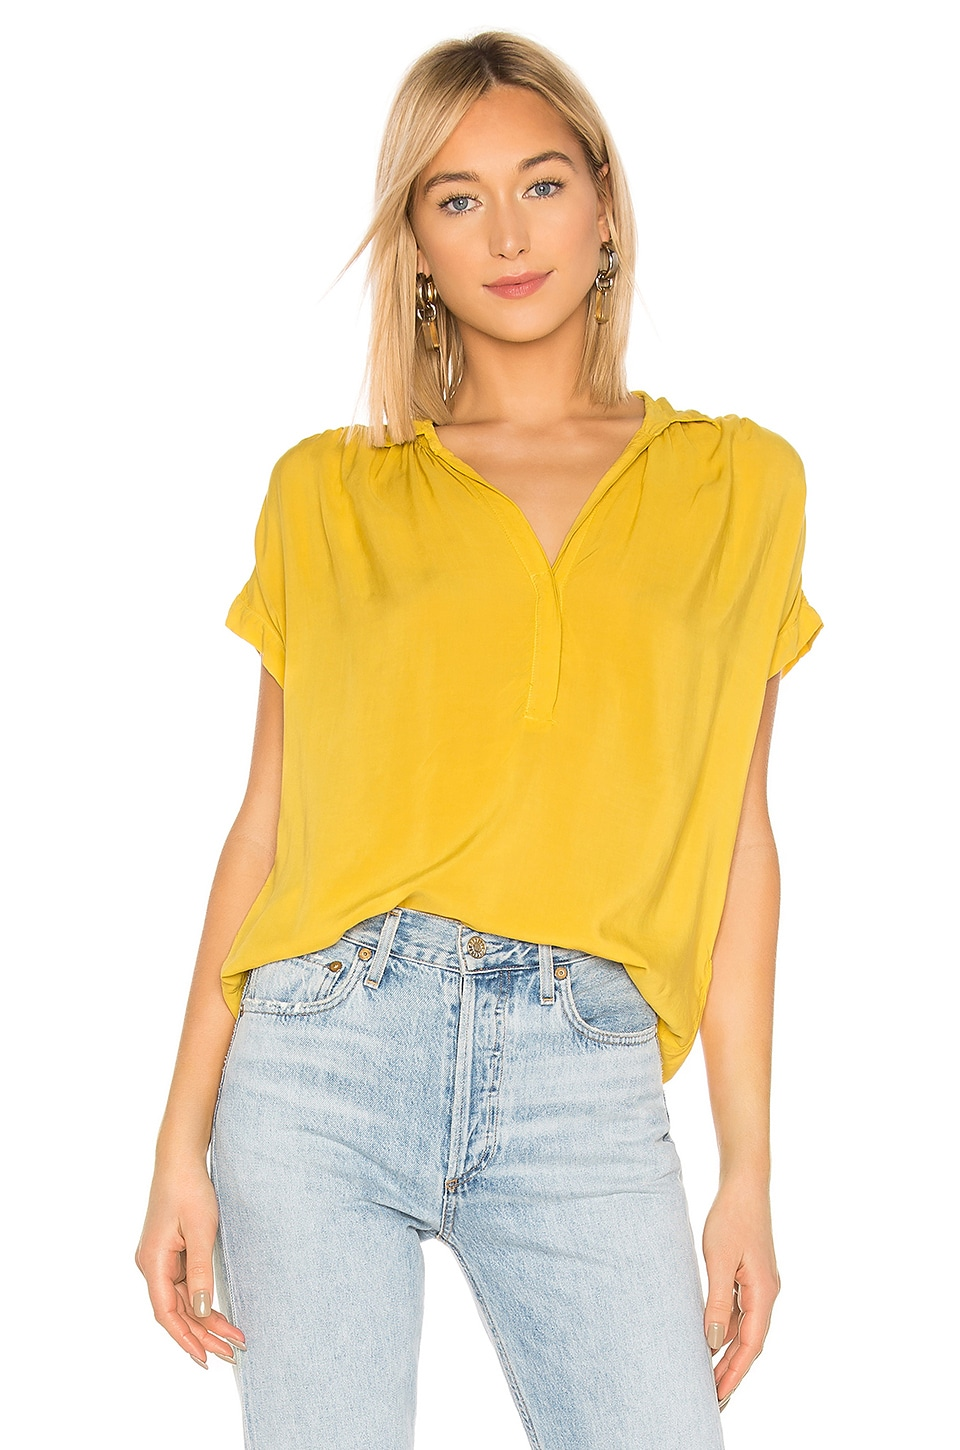 Velvet by Graham & Spencer Taylen Blouse in Canary